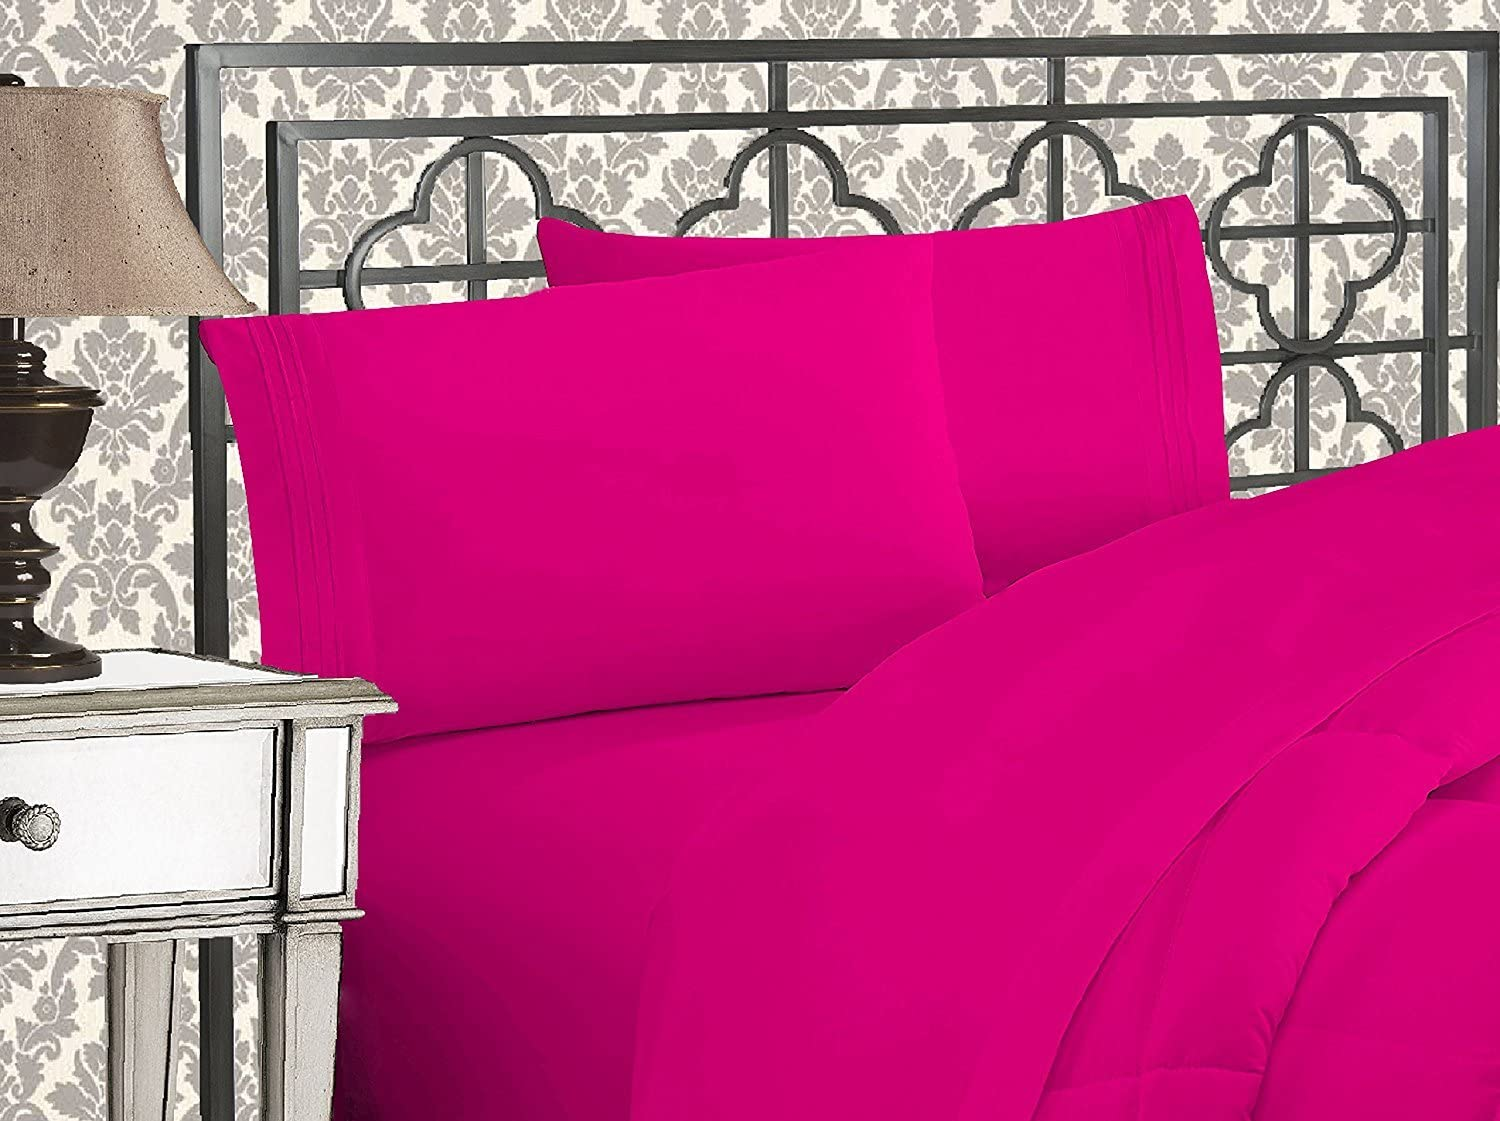 Elegant Comfort 1500 Thread Count Wrinkle & Fade Resistant Egyptian Quality Ultra Soft Luxurious 3-Piece Bed Sheet Set with Deep Pockets, Twin/Twin XL Pink